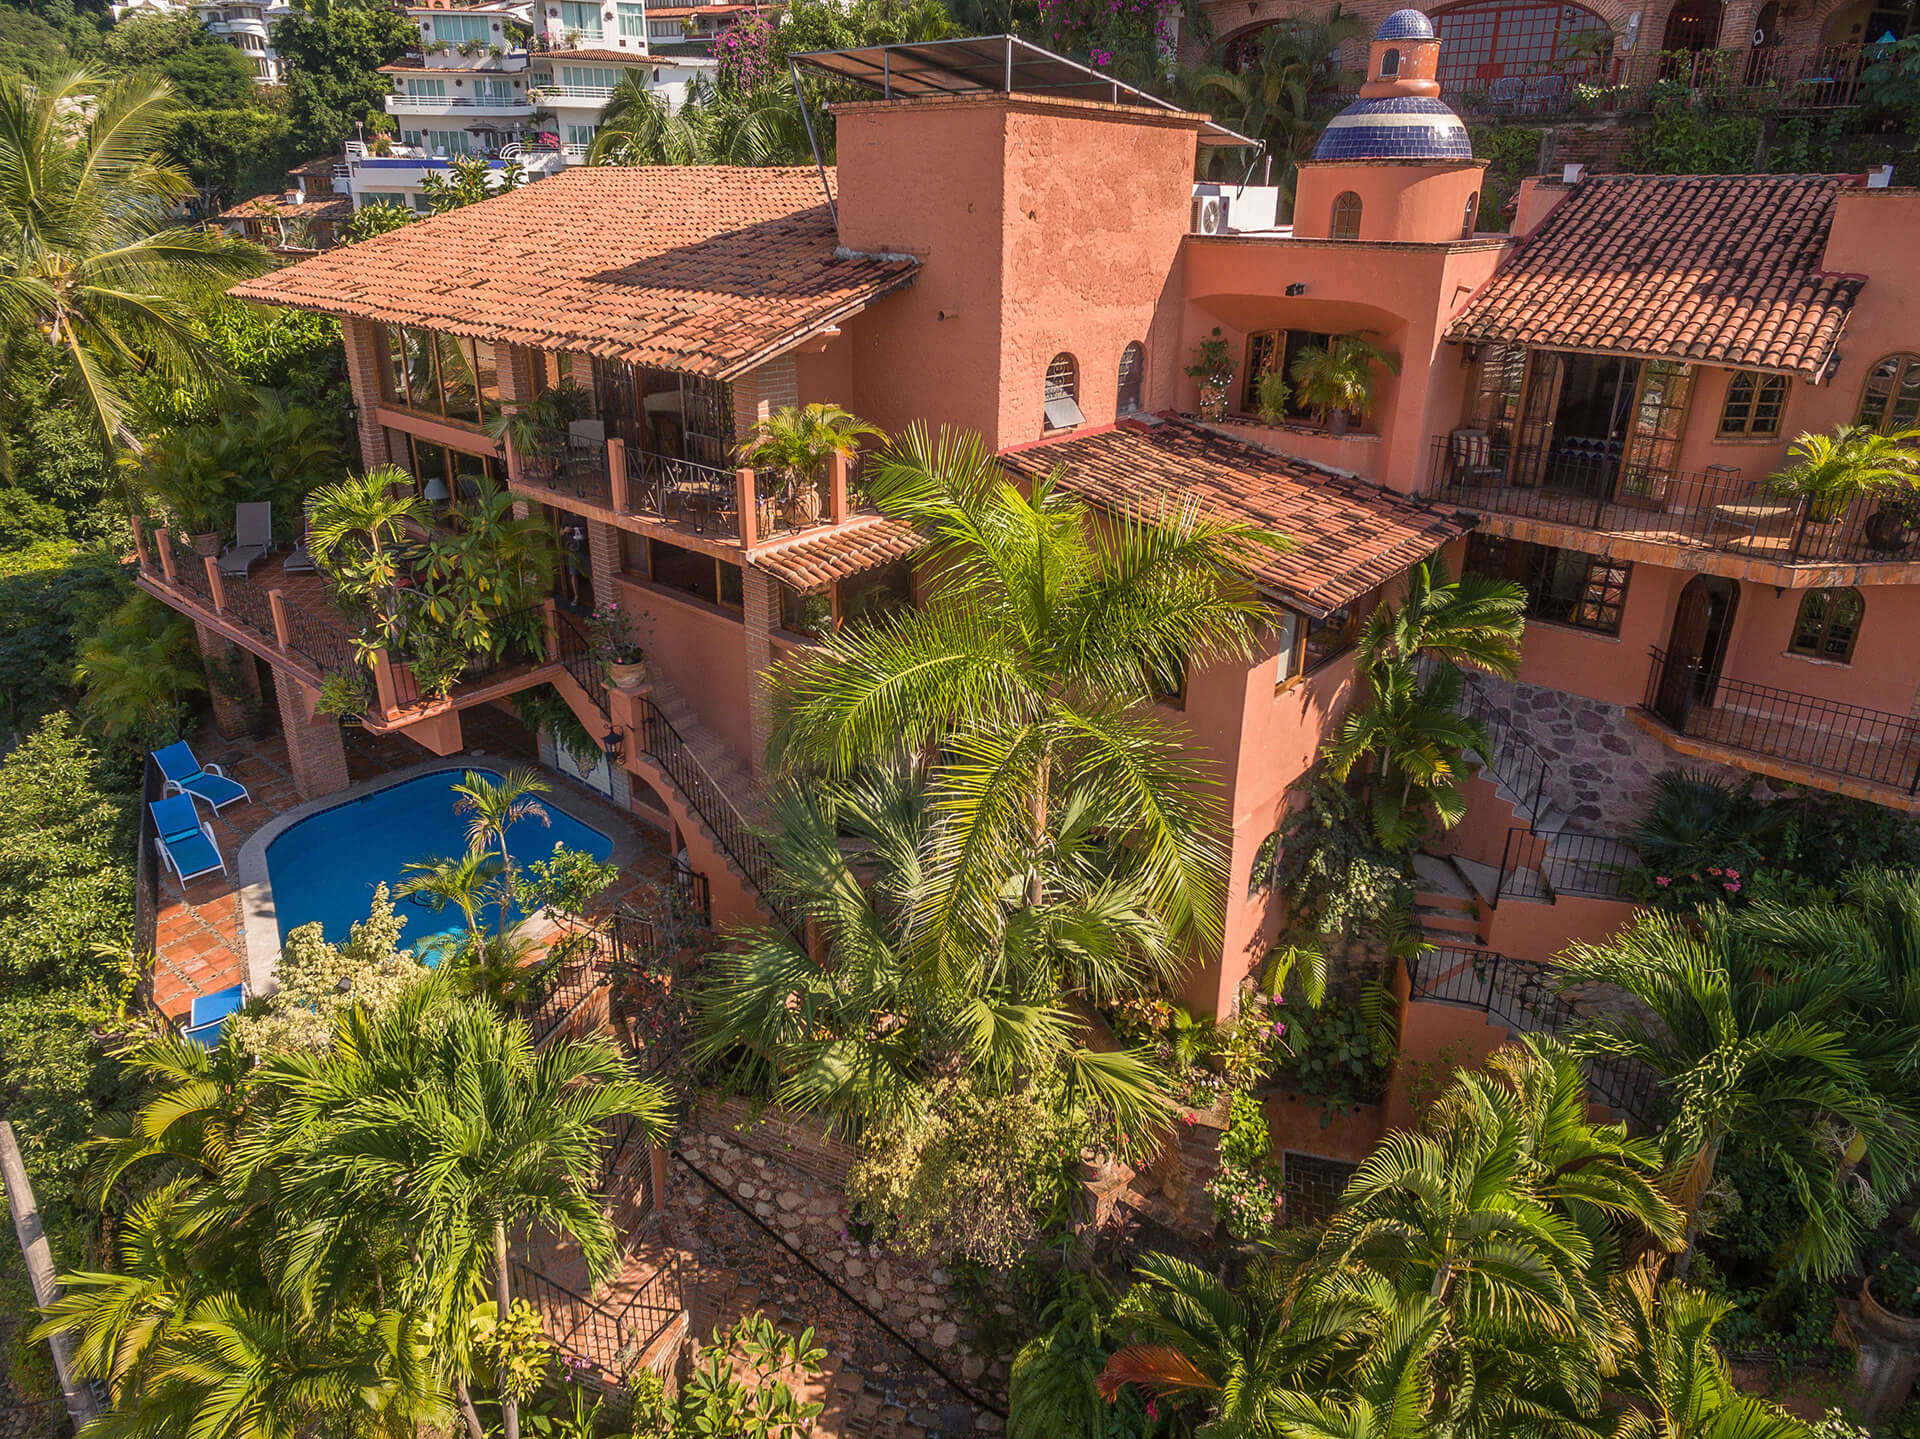 Luxury vacation rentals mexico - Puerto vallarta - Alta vista - No location 4 - Casa Paraiso - Image 1/26